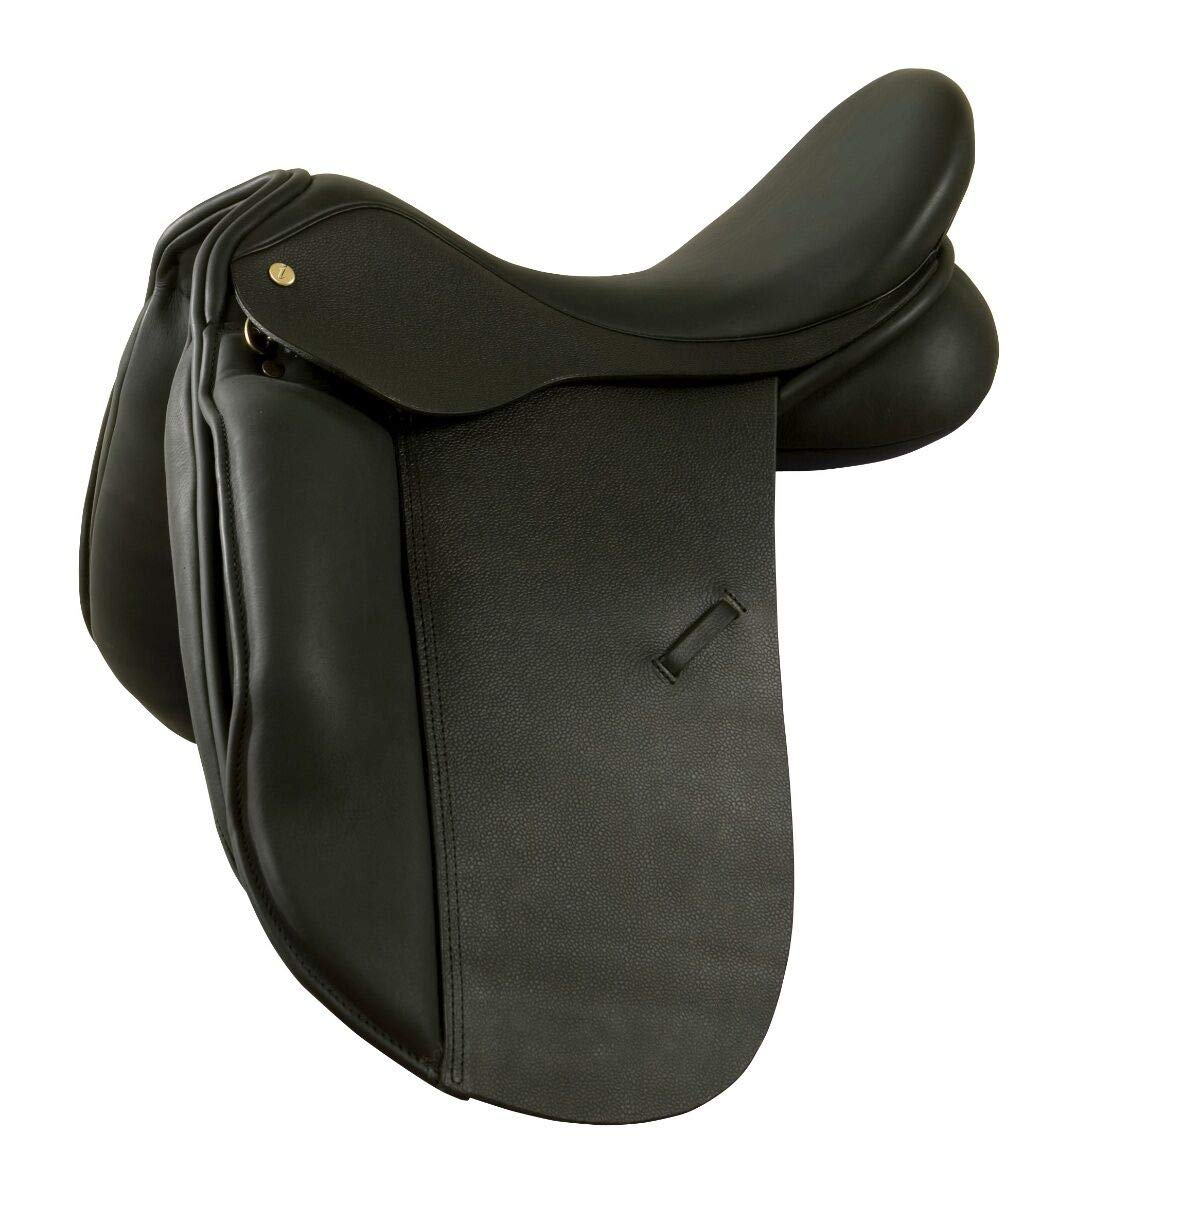 Black 14 Inches Black 14 Inches New Black Leather Dressage All Purpose English Horse Racing Tack & Saddle ES-504 (14 Inches, Black)